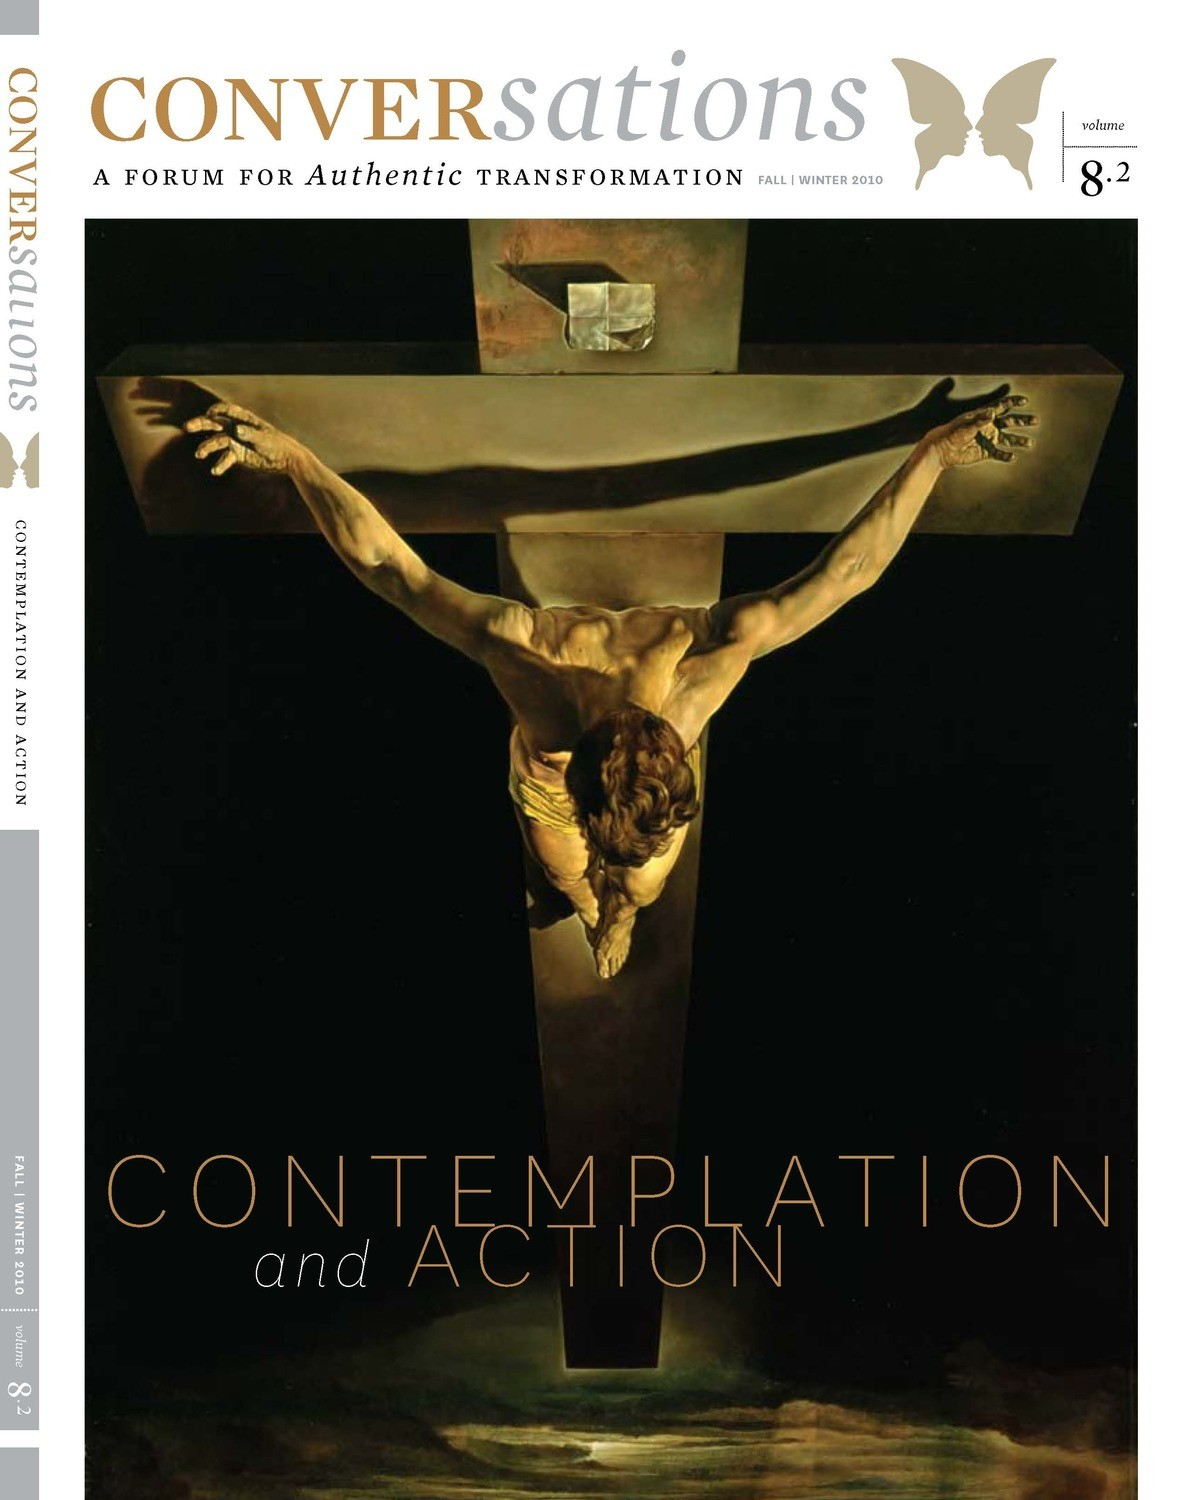 Conversations Journal 8.2 Contemplation and Action (Hardcopy)